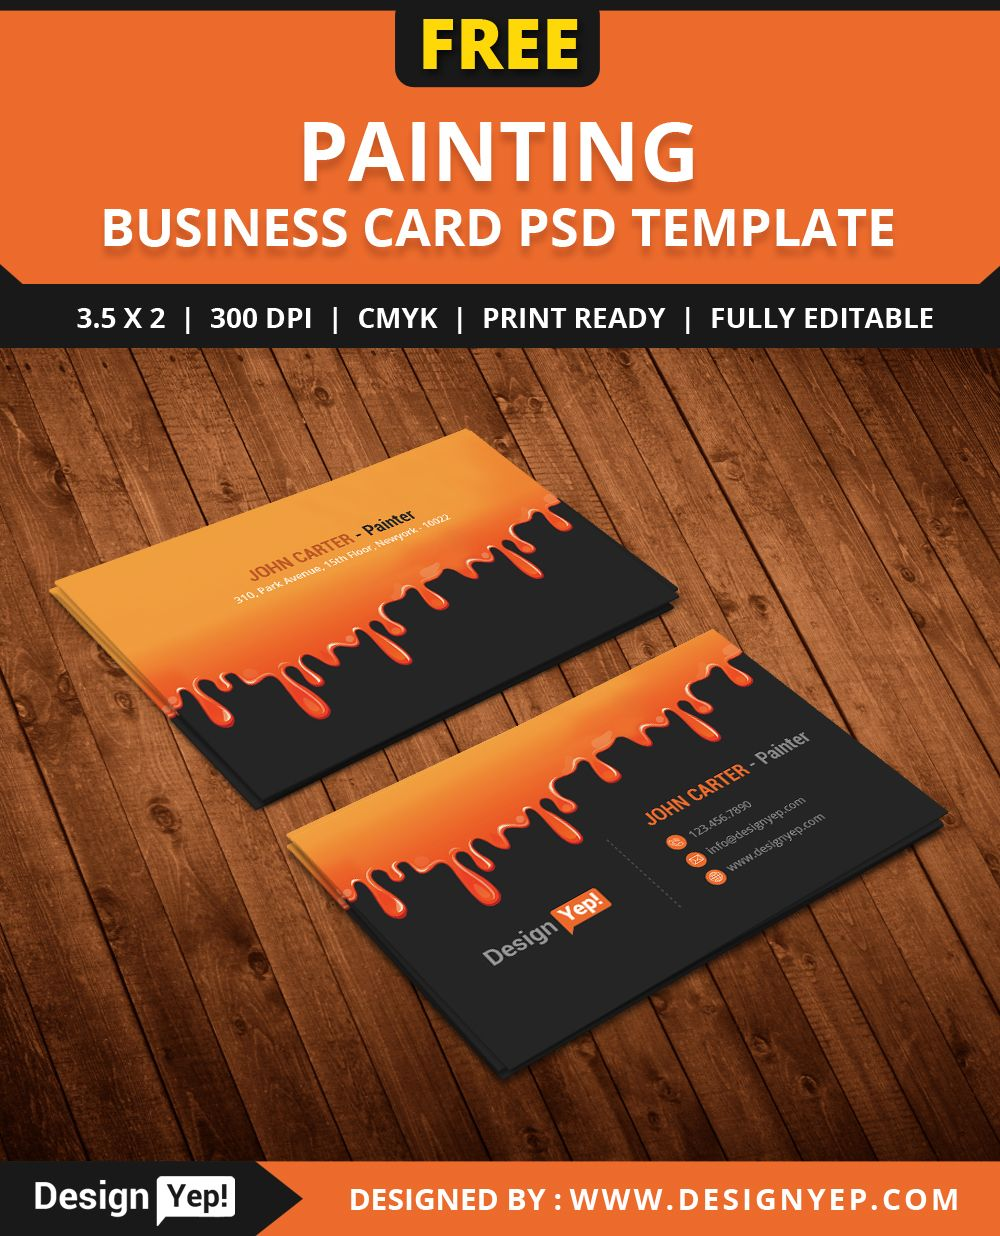 Free painting business card psd template free business card free painting business card psd template accmission